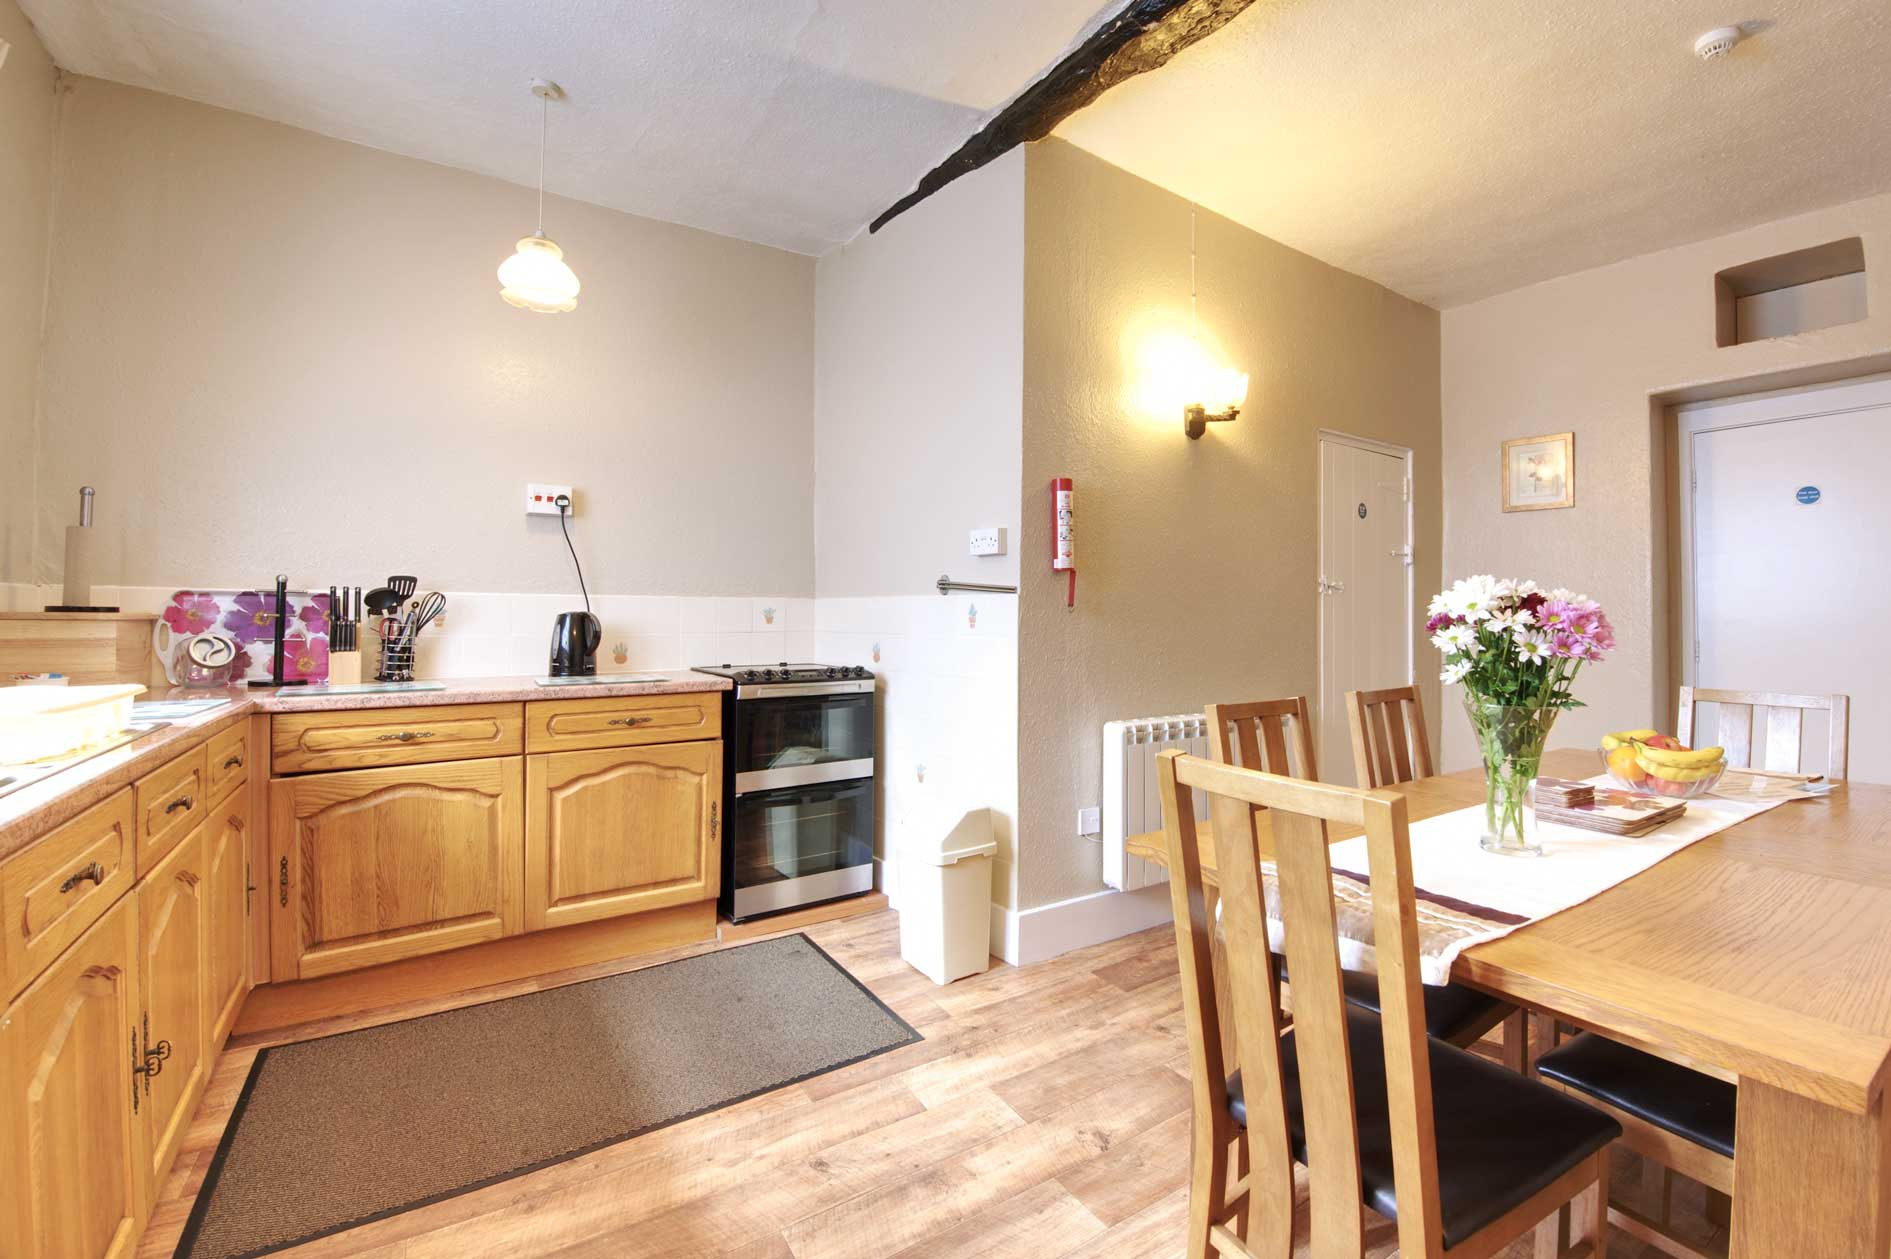 Light Kitchen With Wooden Cupboards And Kitchen Table